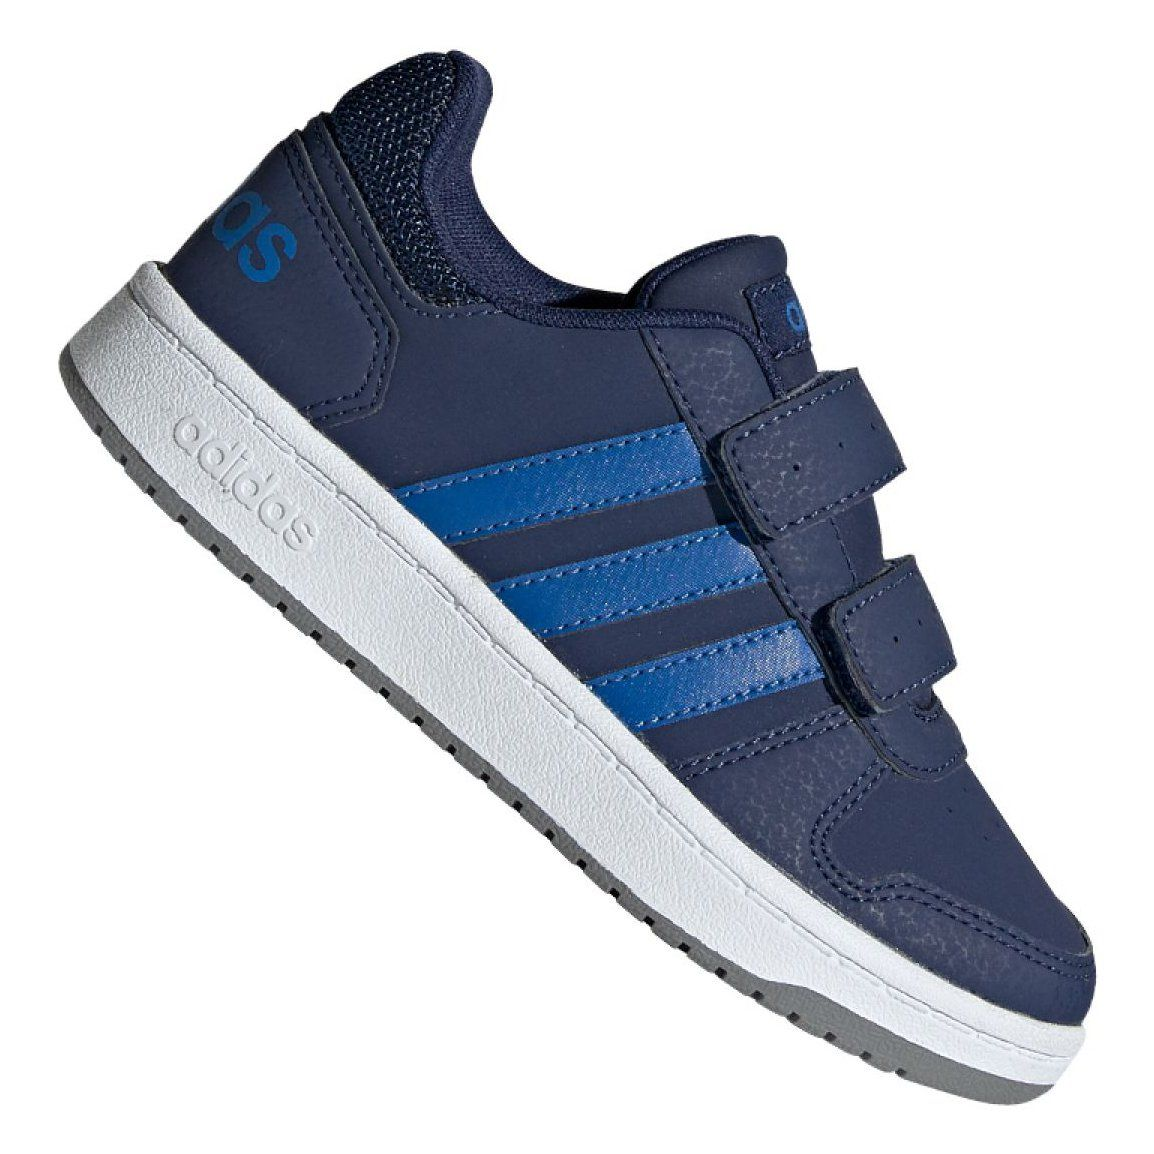 Buty Adidas Hoops 2 0 Cmf C Jr Ee9000 Granatowe Adidas Outfit Shoes Adidas Shoes Outlet Shoes